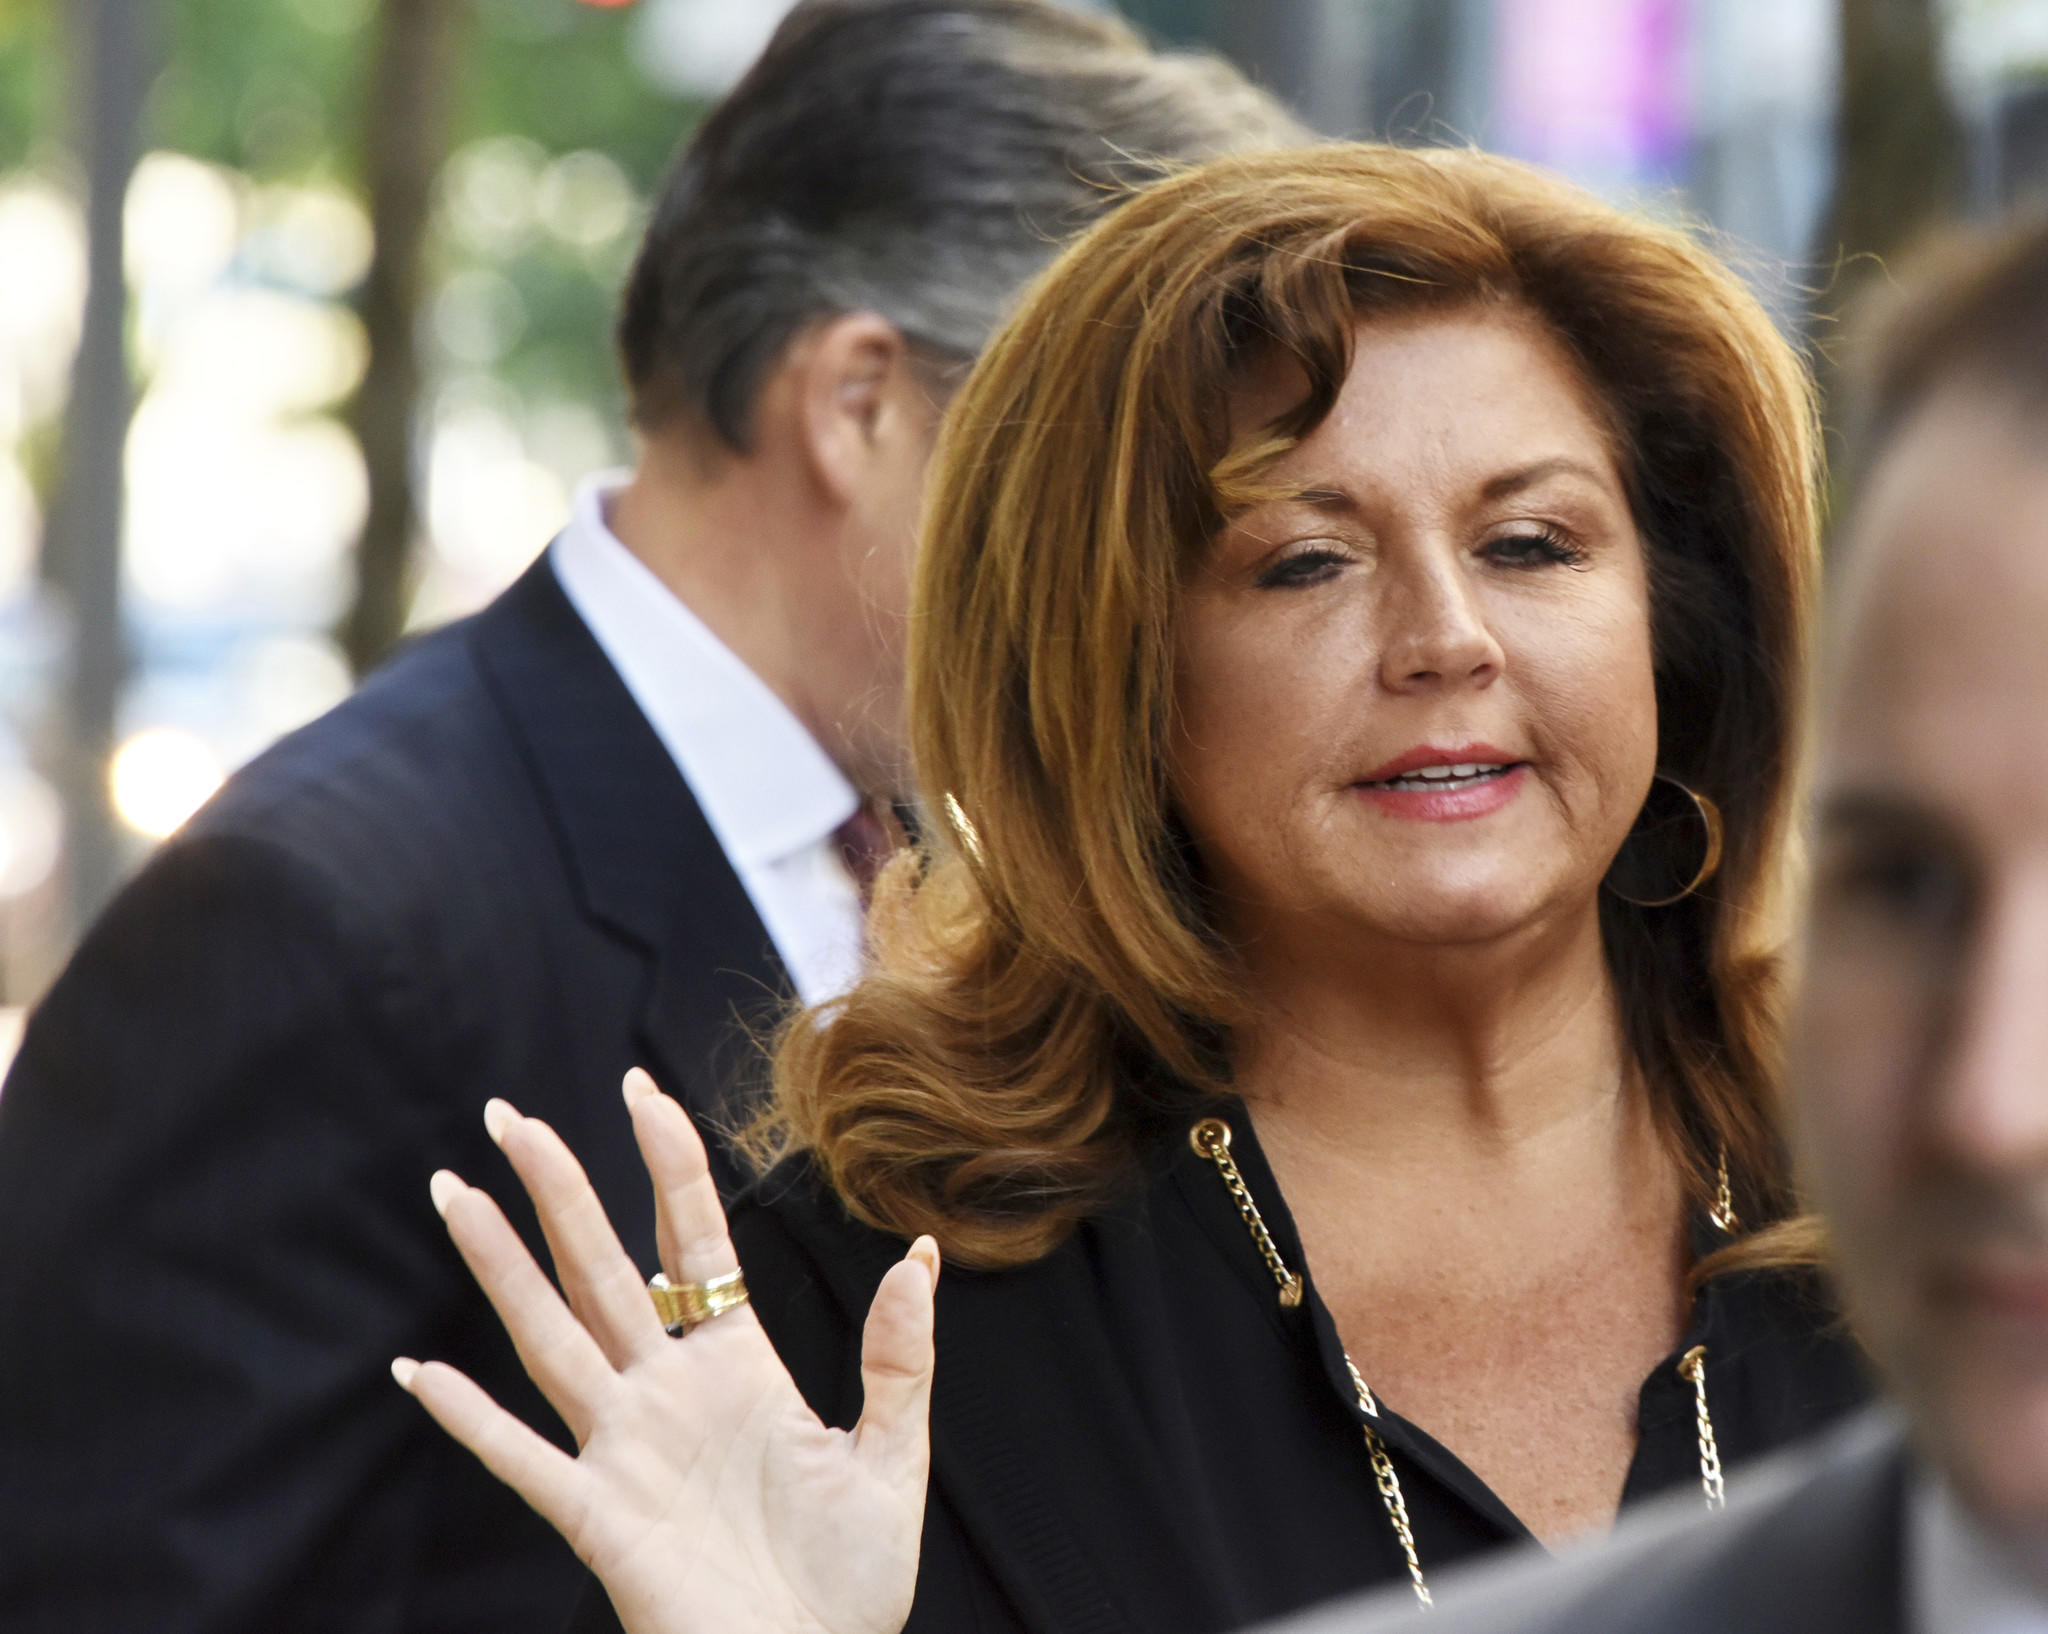 Former Dance Moms star Abby Lee Miller gets 1 year in